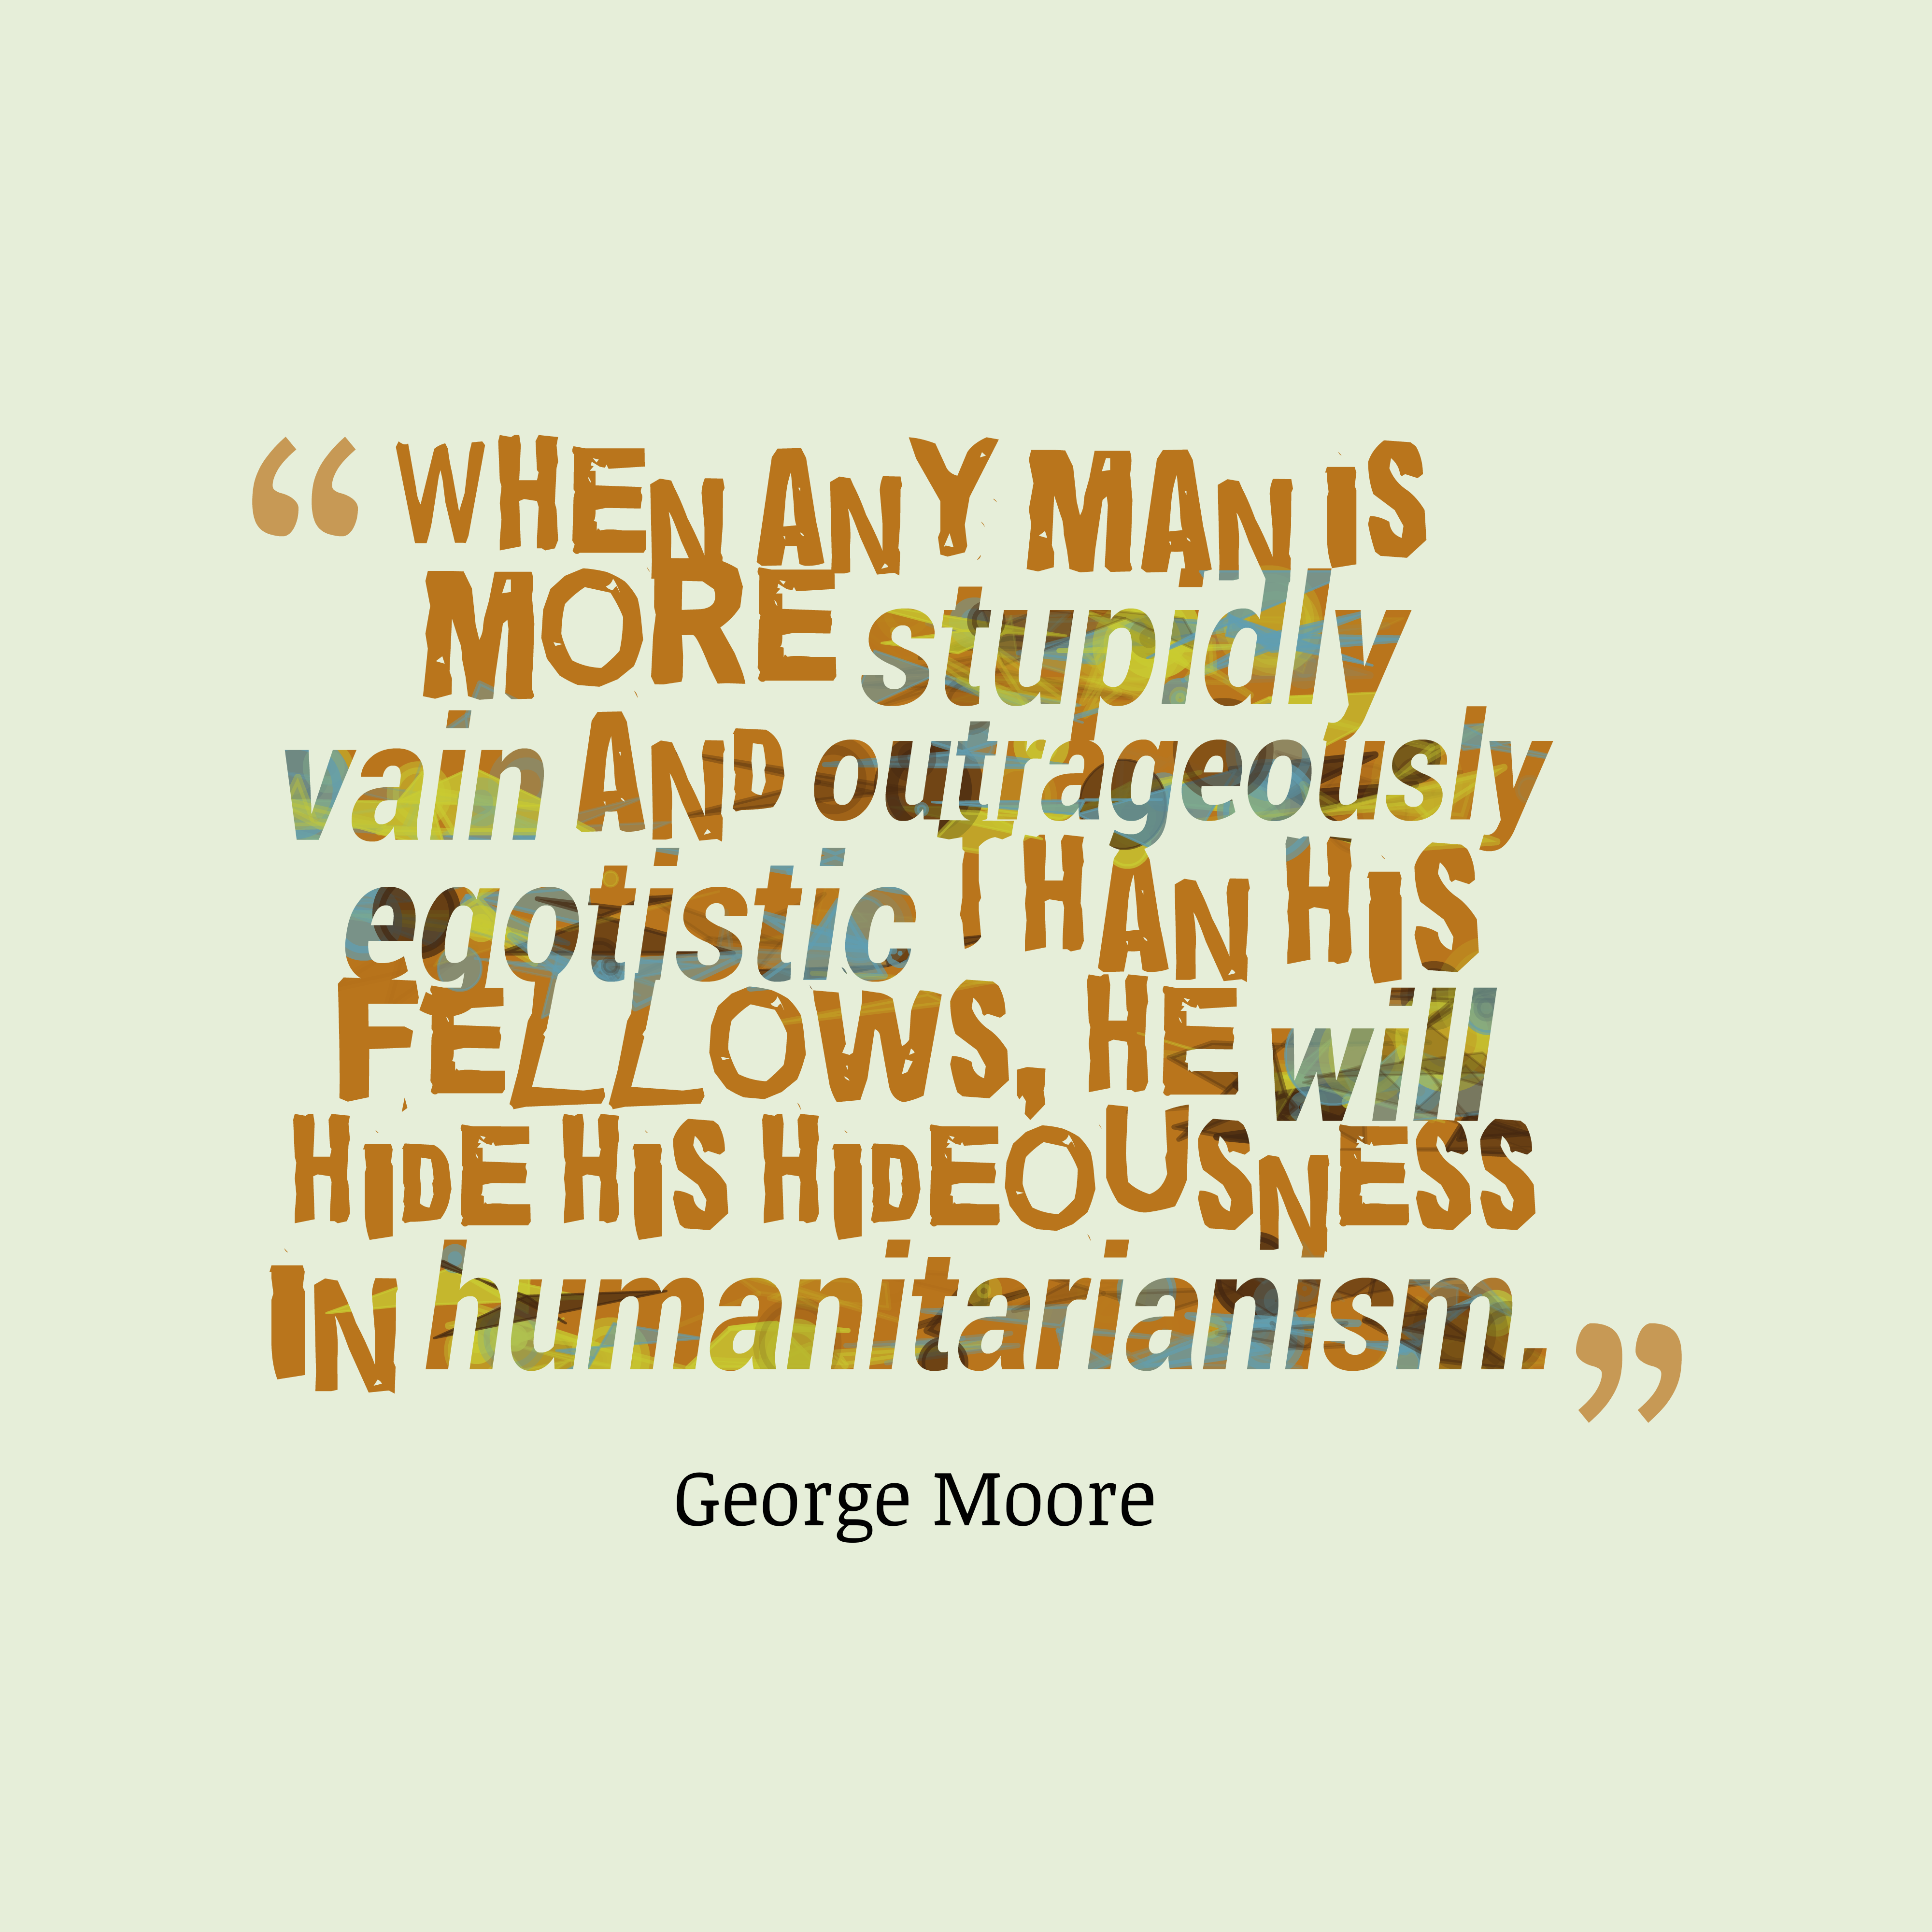 george moore quote about ego